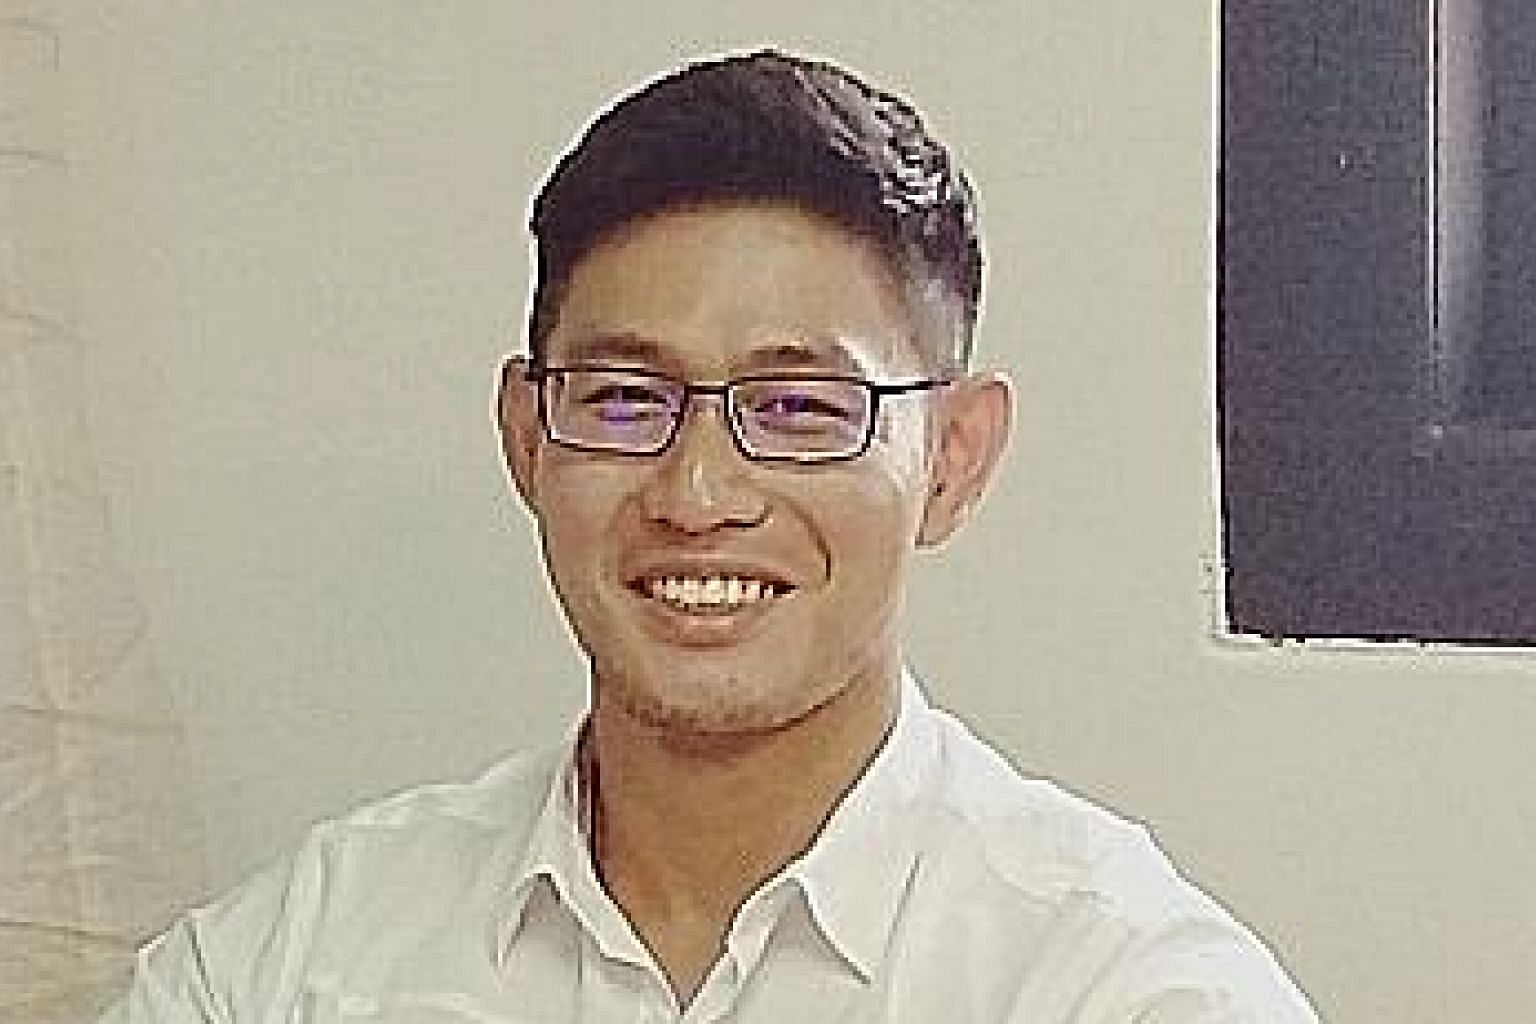 Business graduate Leon Yeow is currently working as a digital analyst at local company Design Prodigy.